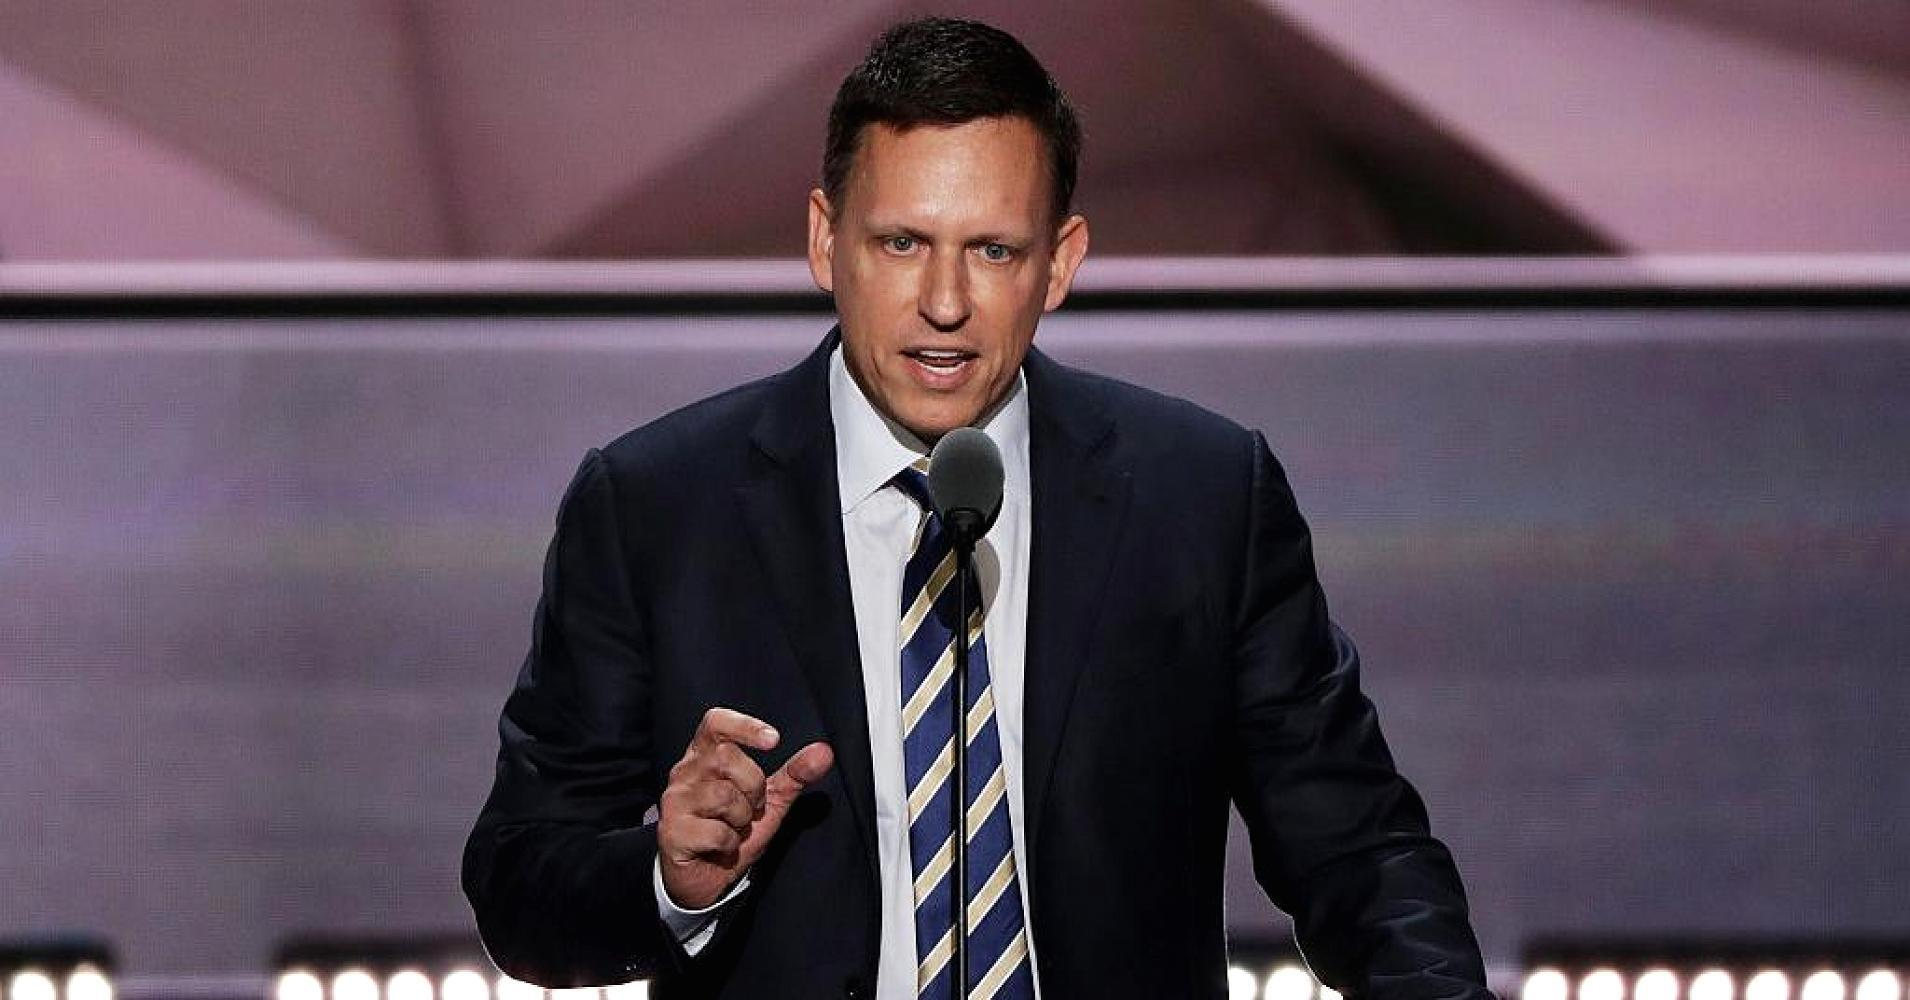 Peter Thiel may be mulling a run for California governor: Report